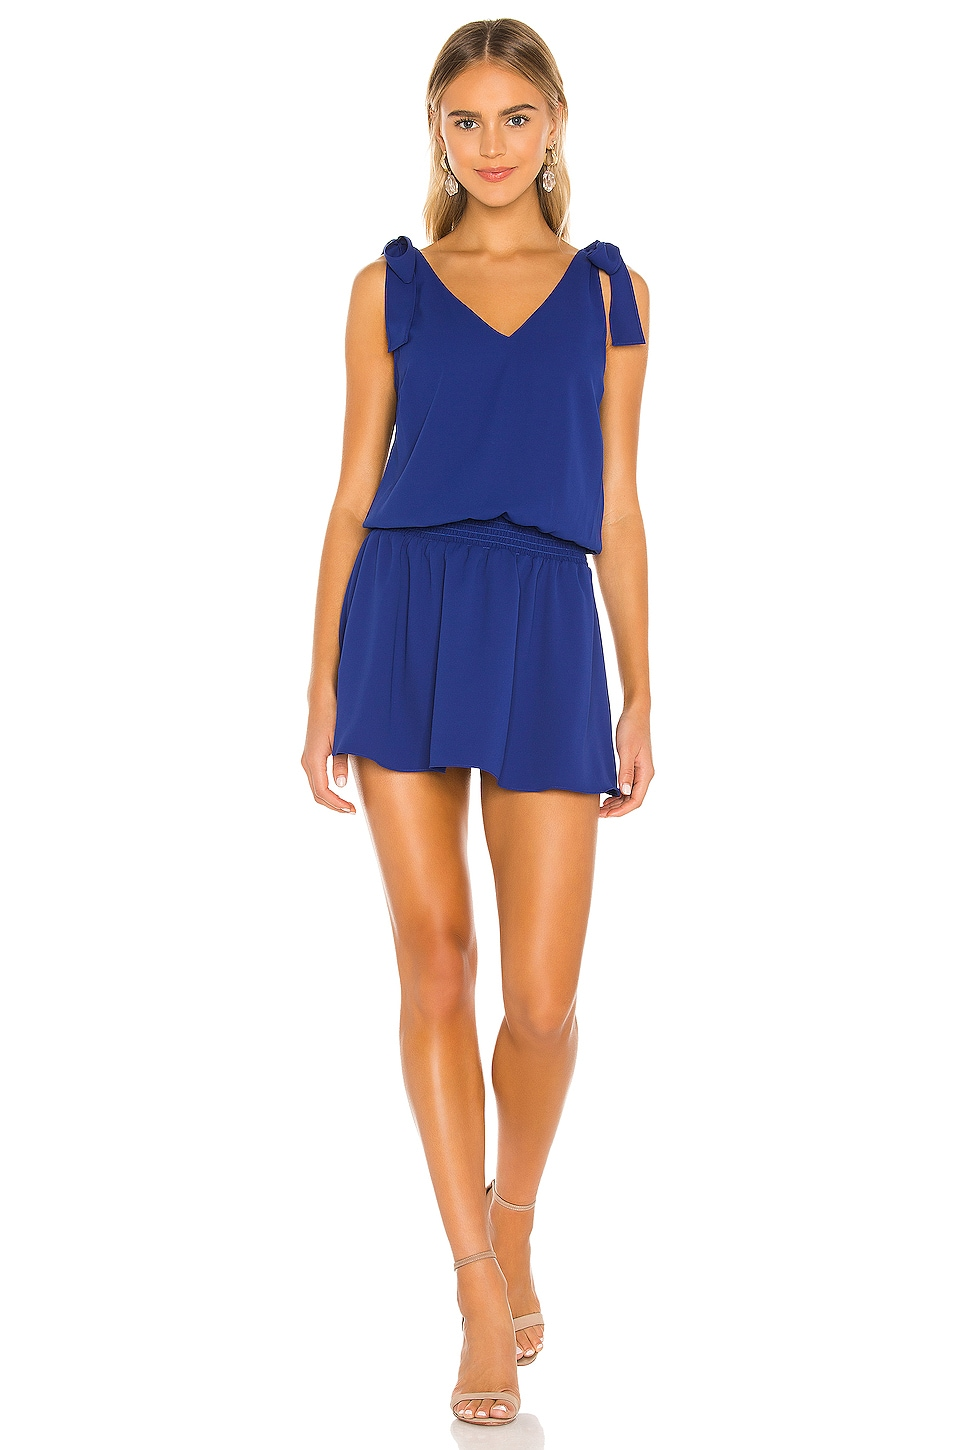 Josephina Dress             Amanda Uprichard                                                                                                       CA$ 272.92 12